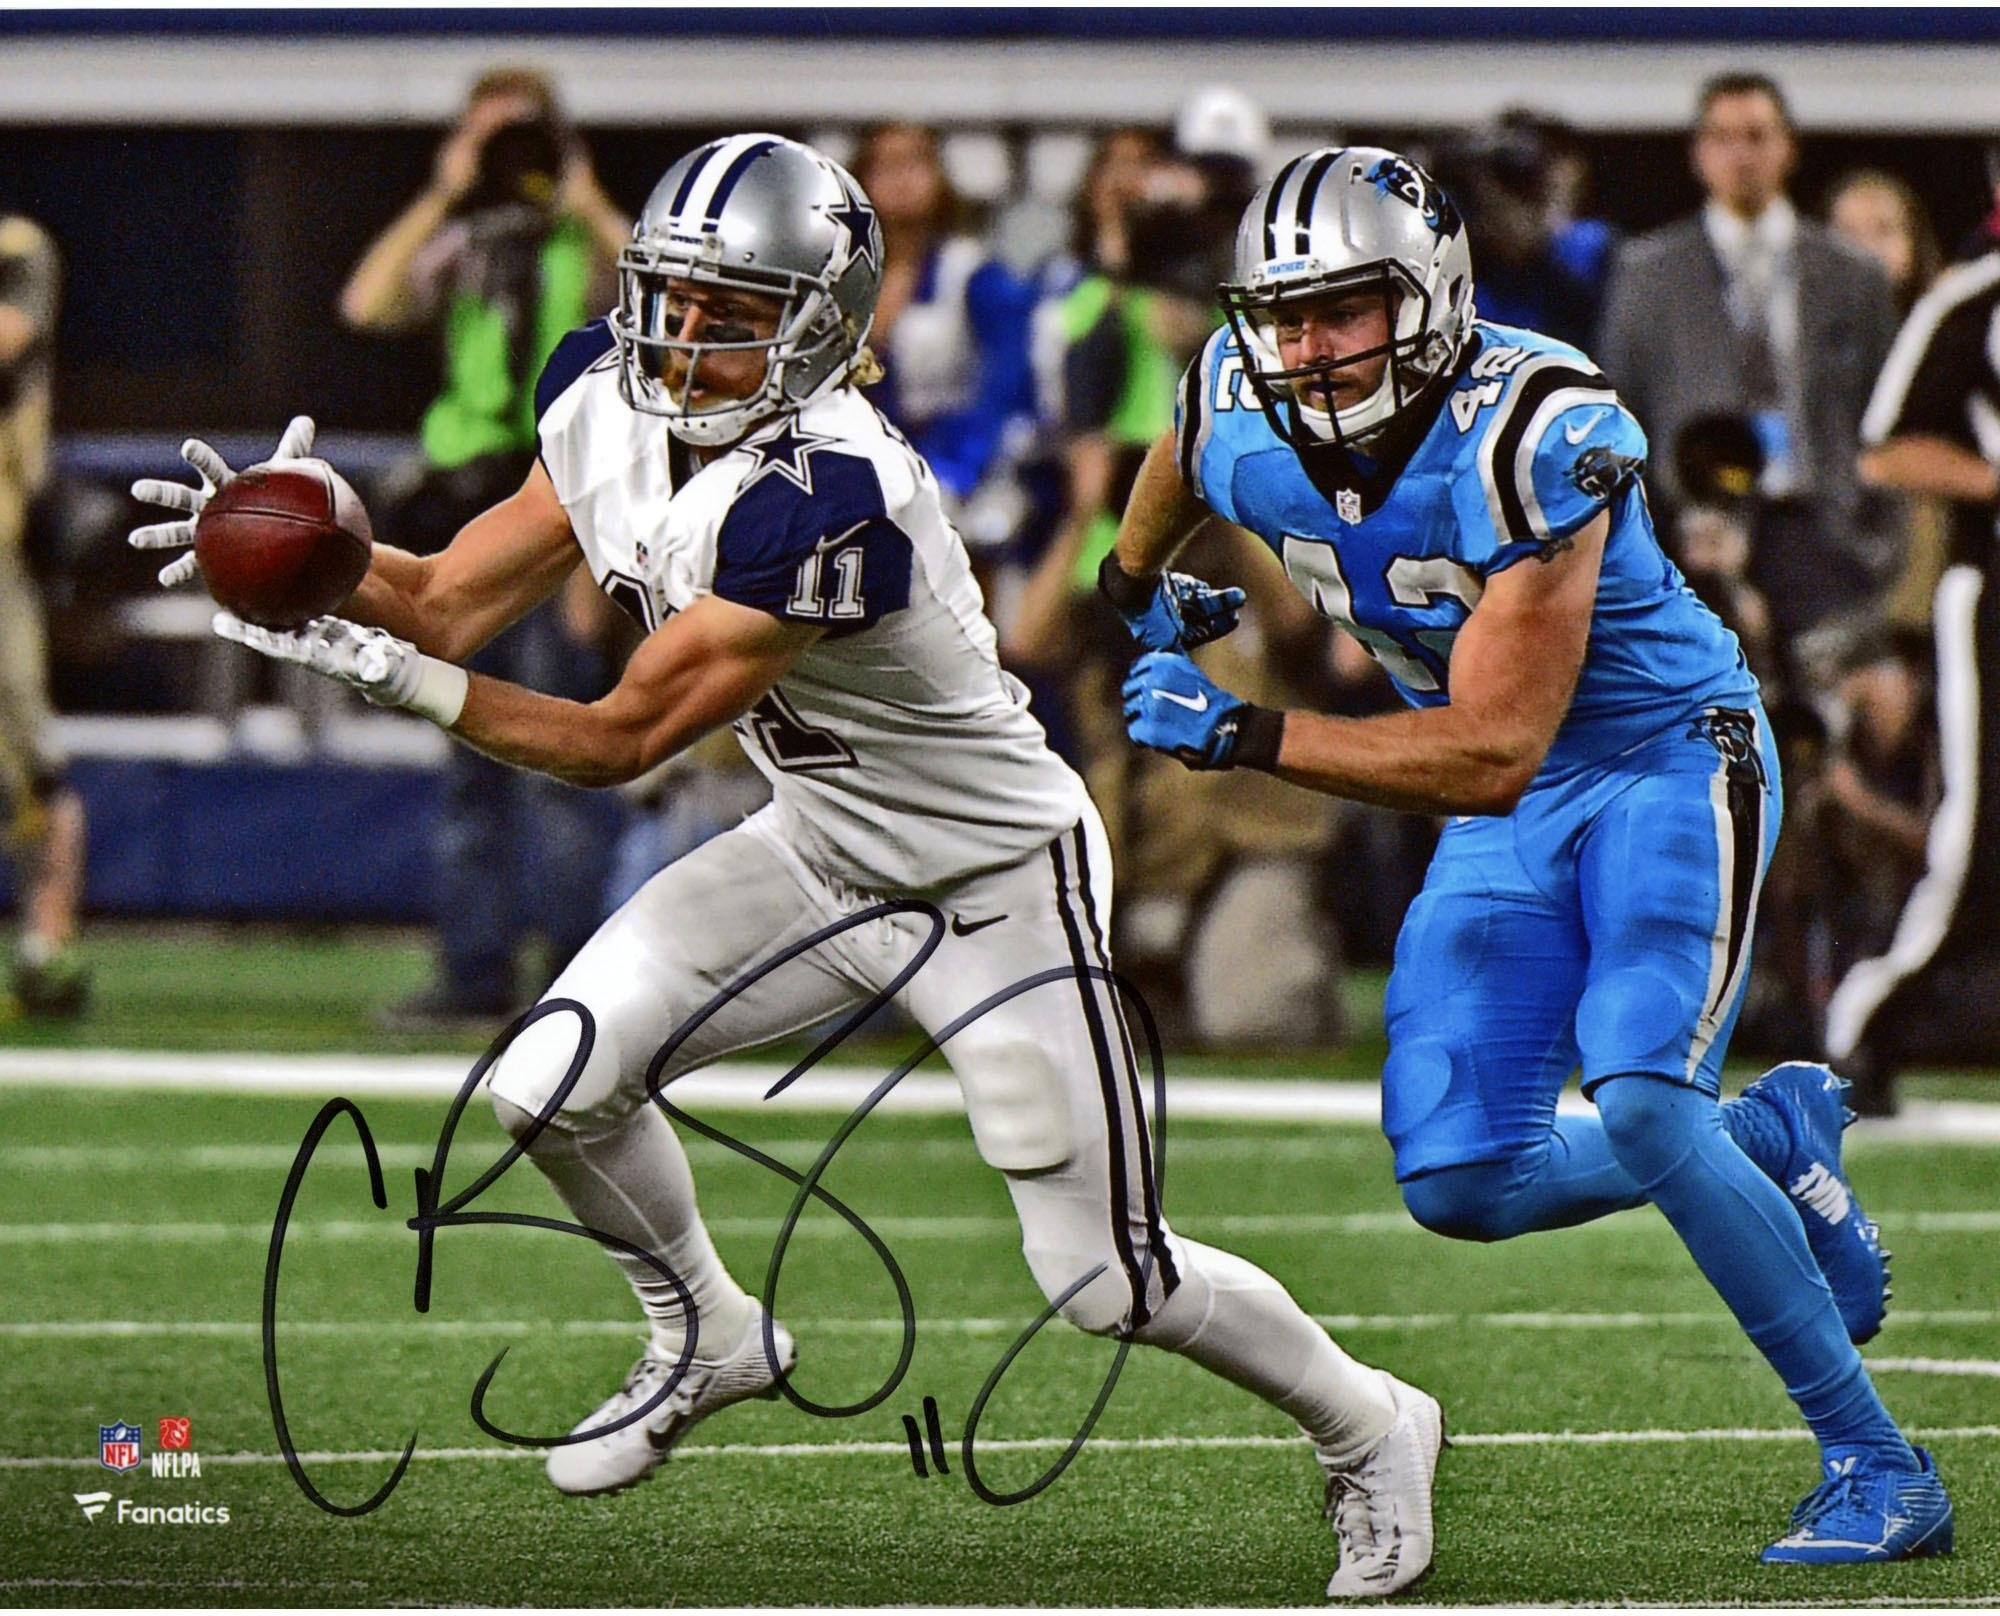 "Cole Beasley Dallas Cowboys Autographed 8"" x 10"" Catching Photograph Fanatics Authentic Certified Autographed NFL Photos"